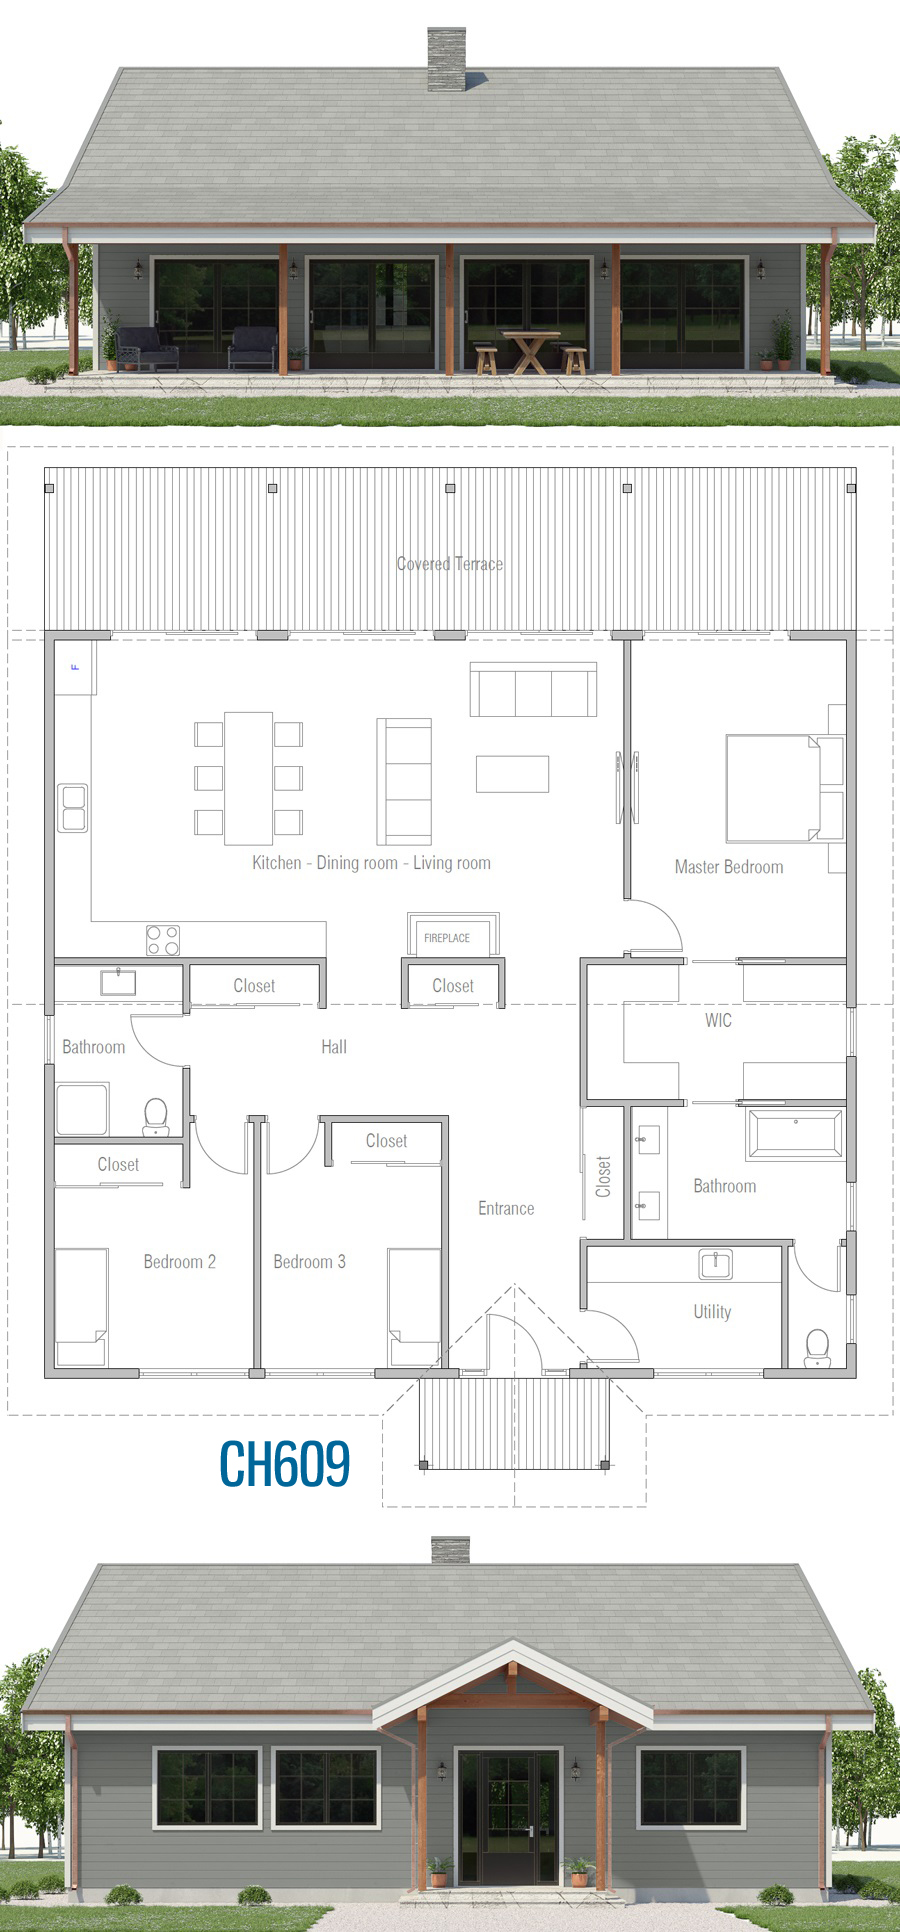 Small House Plan Ch609 My House Plans Architectural House Plans New House Plans